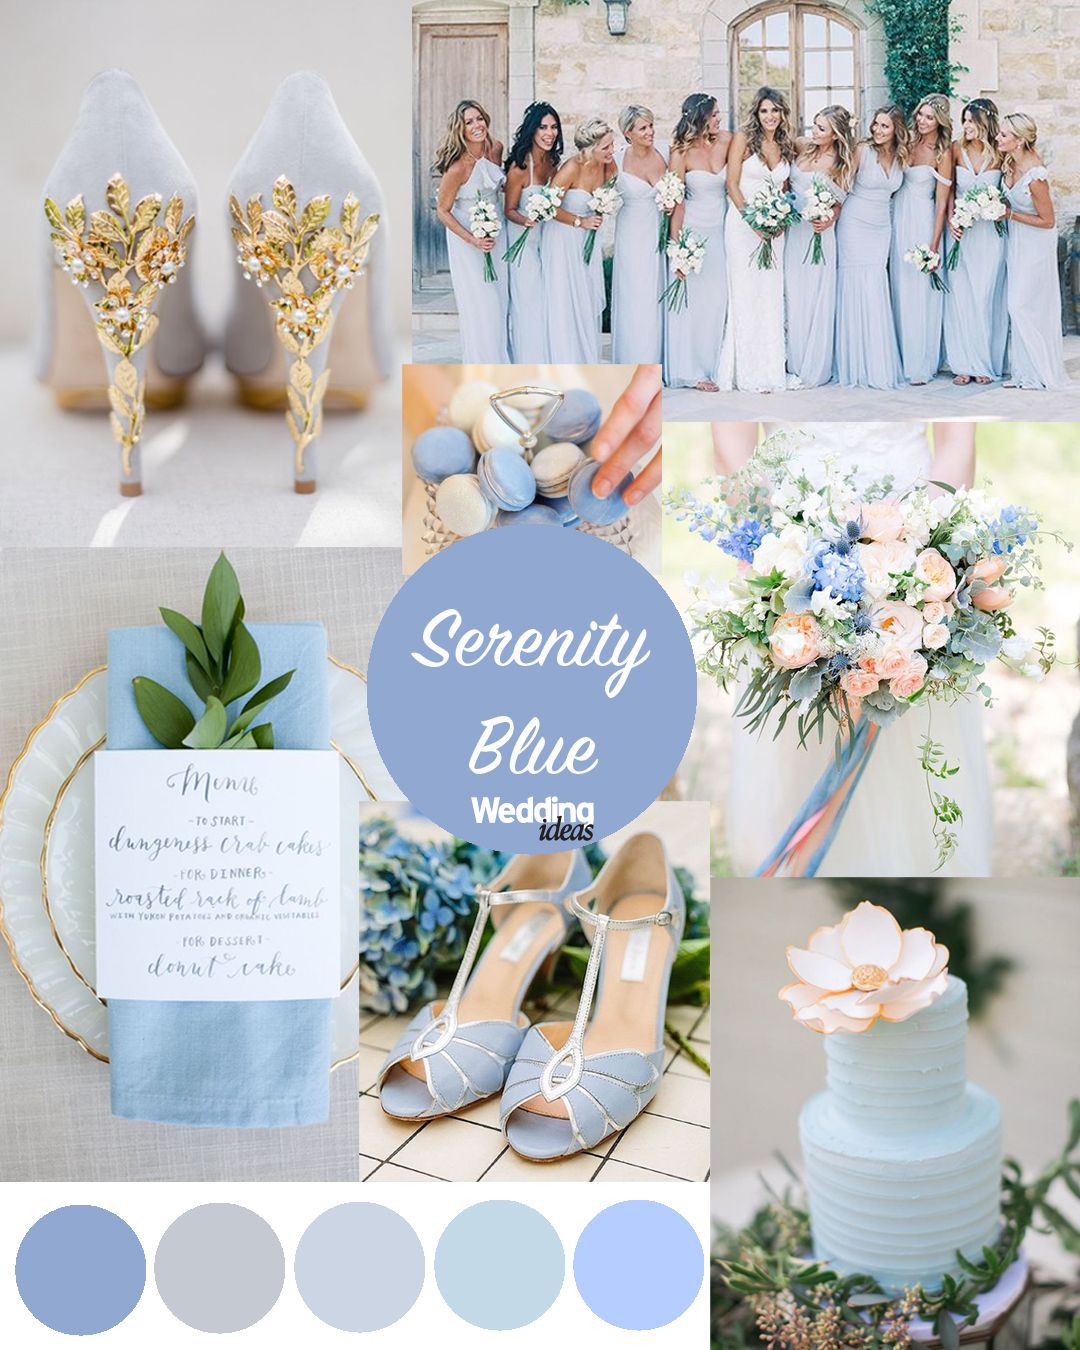 Wedding Themes And Colors: Rose Quartz & Serenity Blue